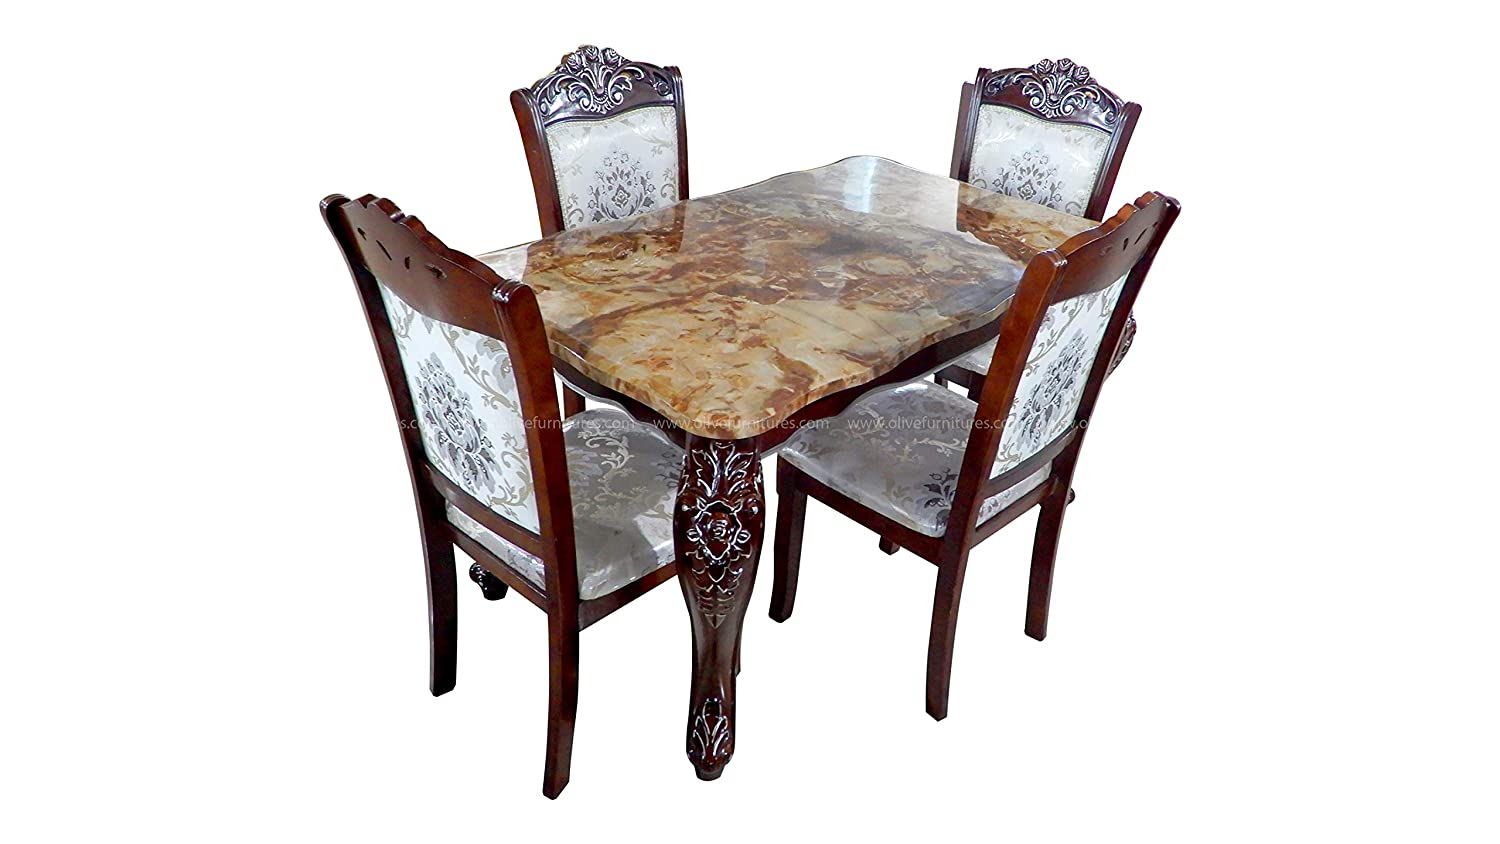 Olive Furniture Brown Color Malaysian Wood Rectangular Dining Table Set With Marble Top 4 Seater Wooden Chairs With White Cushioned Designer Upholstery For Dining Room Home Amazon In Home Kitchen